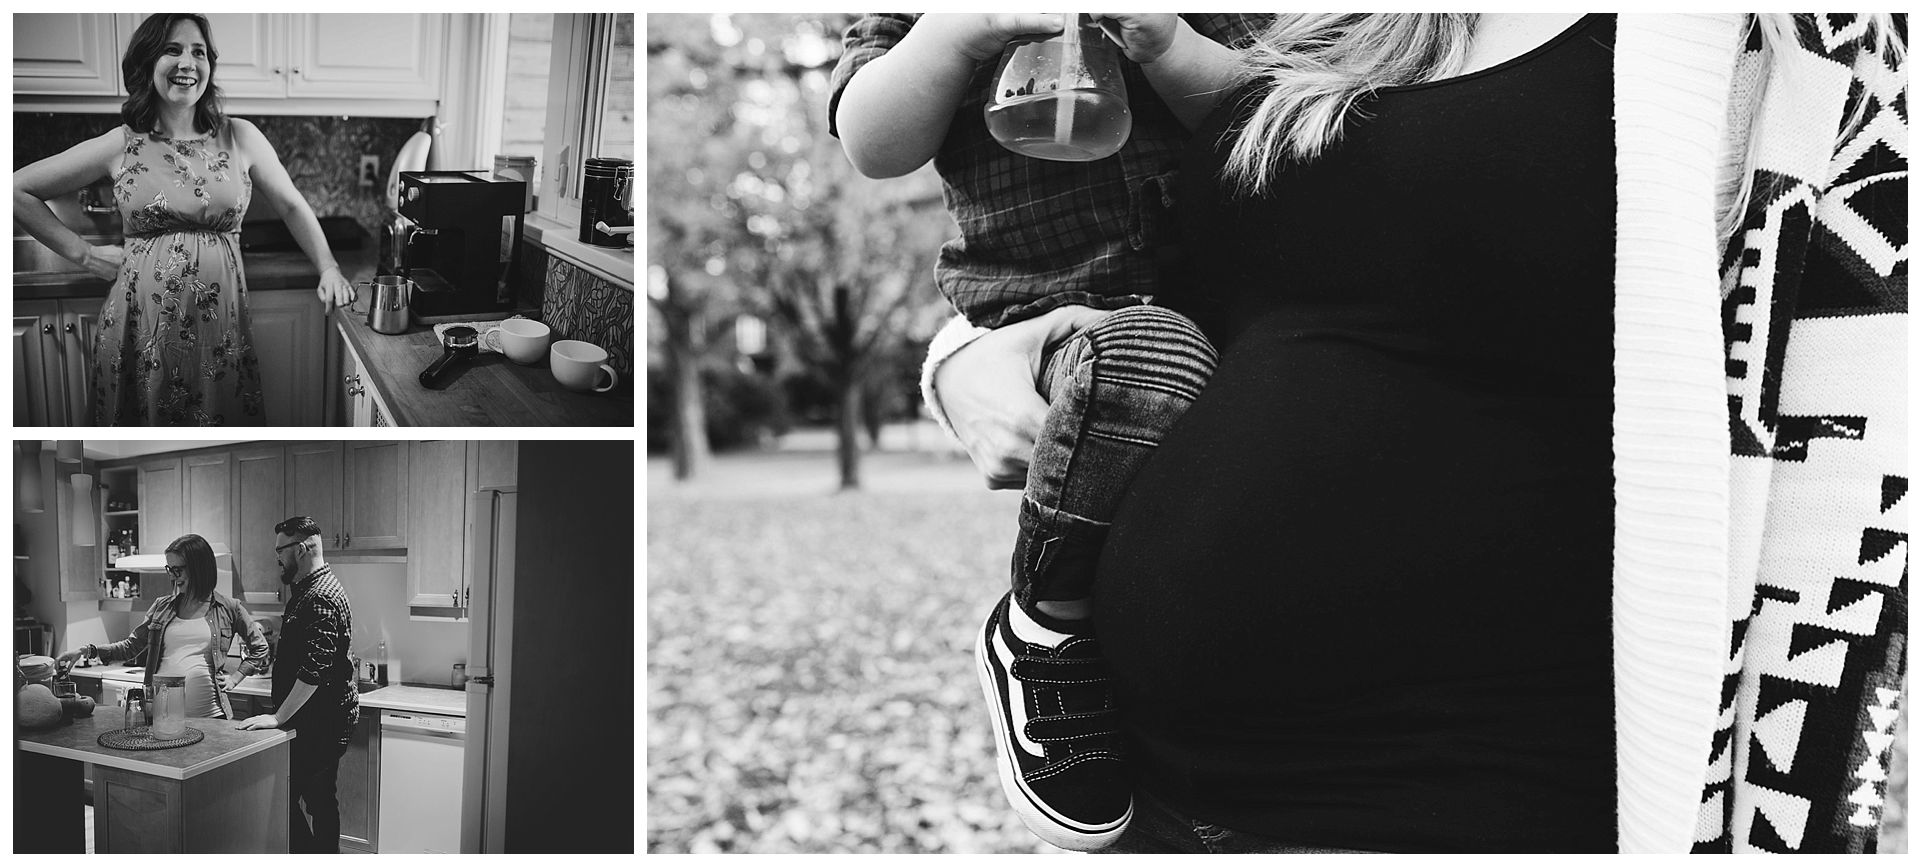 My Approach to Maternity Photography